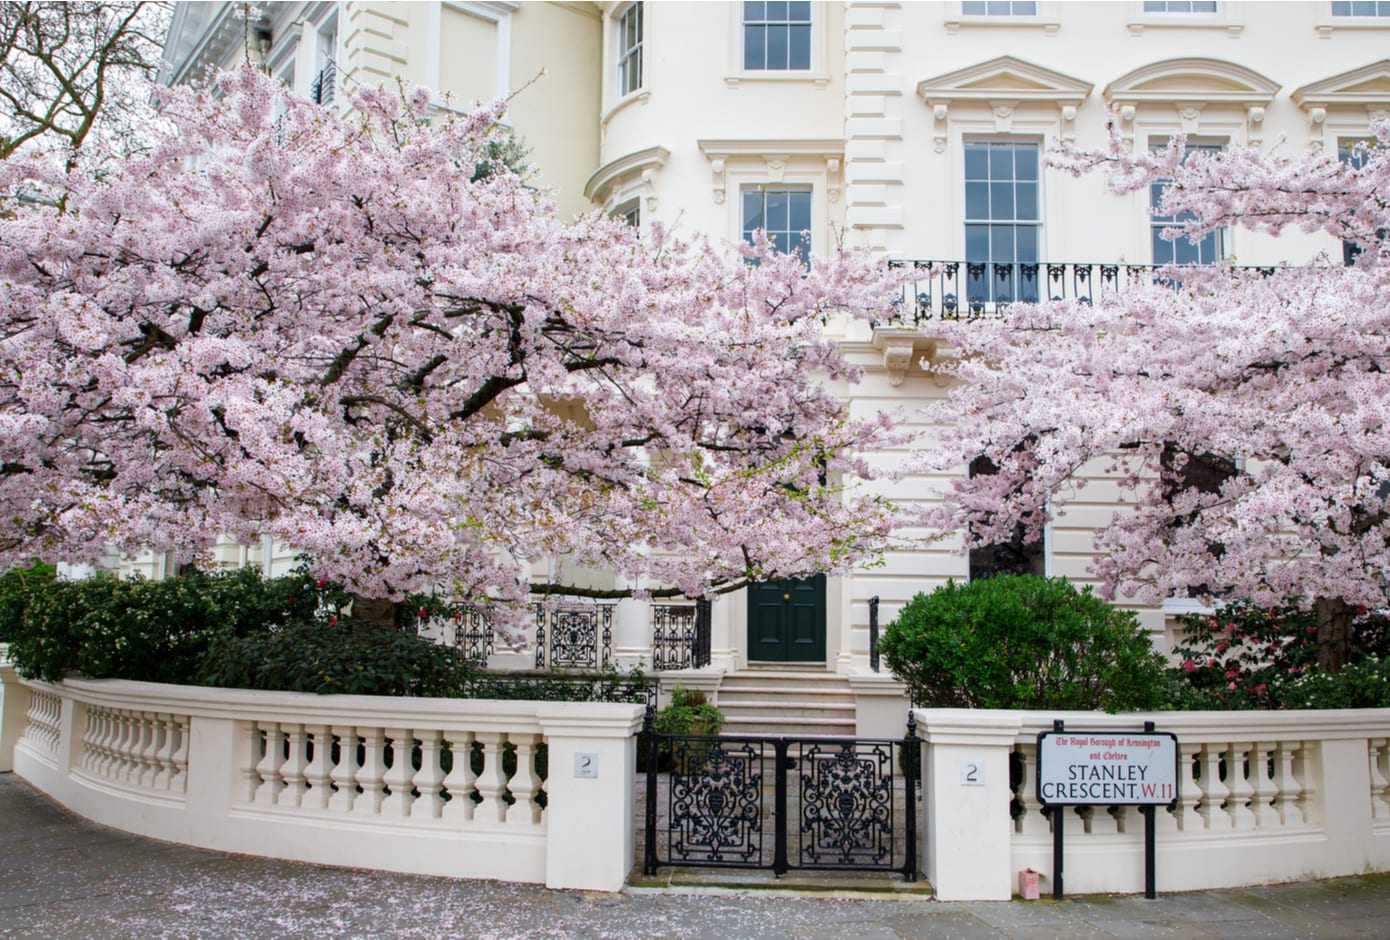 Cherry tree blooming outside  building in Central London.